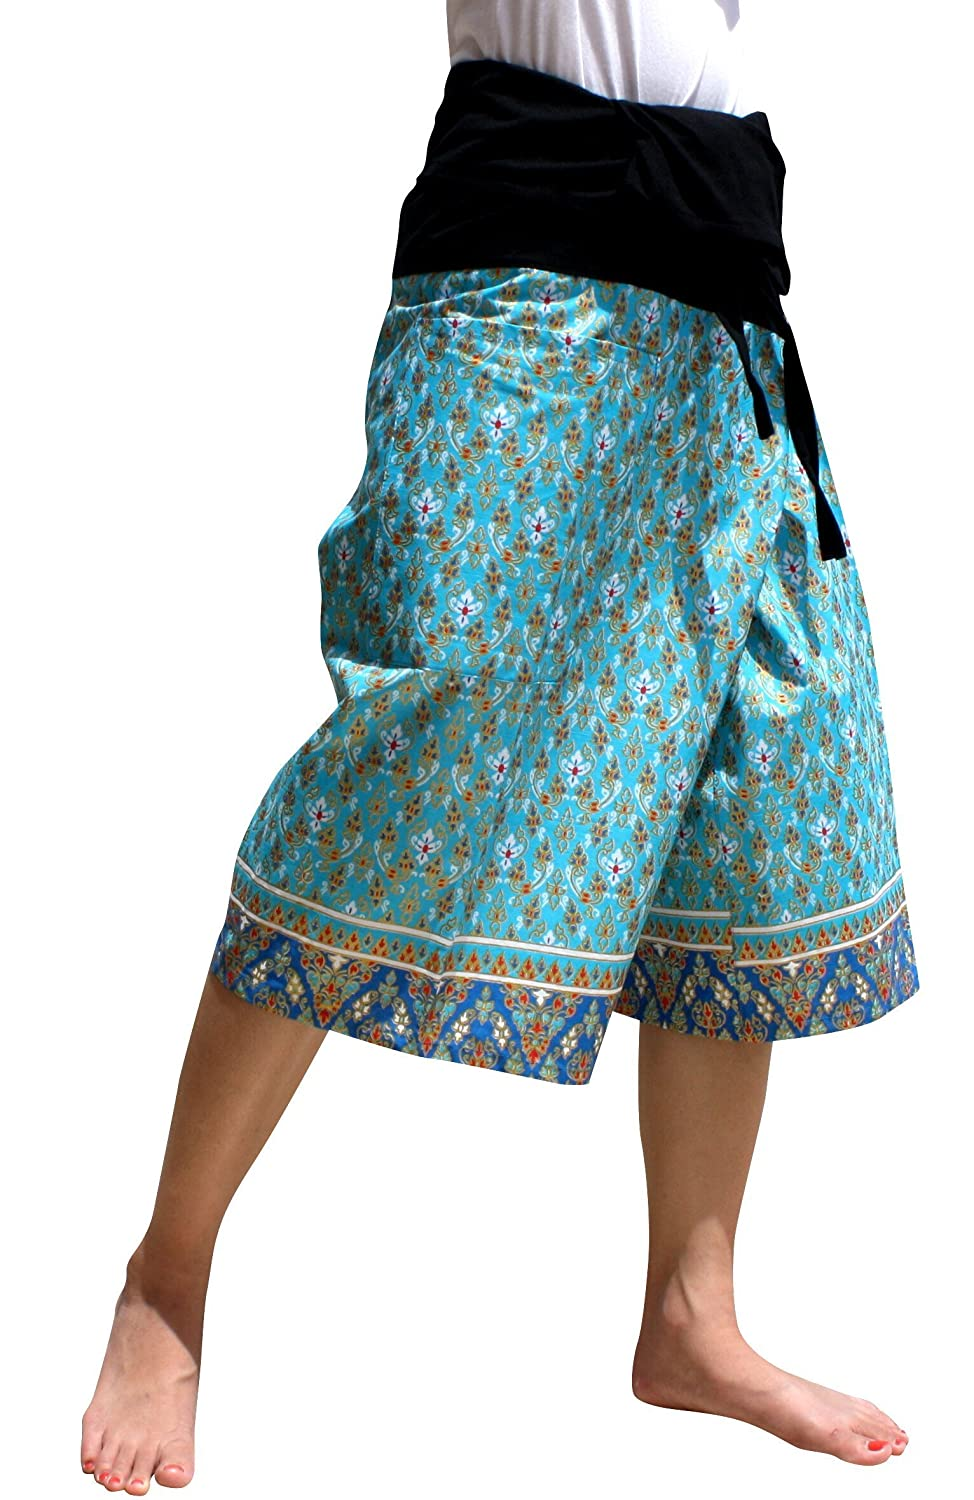 【人気商品】 Raan Pah Muang PANTS メンズ B07G49TW99 Medium|Sukhothai a Deep Sky Blue Sukhothai a Deep Sky Blue Medium, 北十二条書店 31e09188